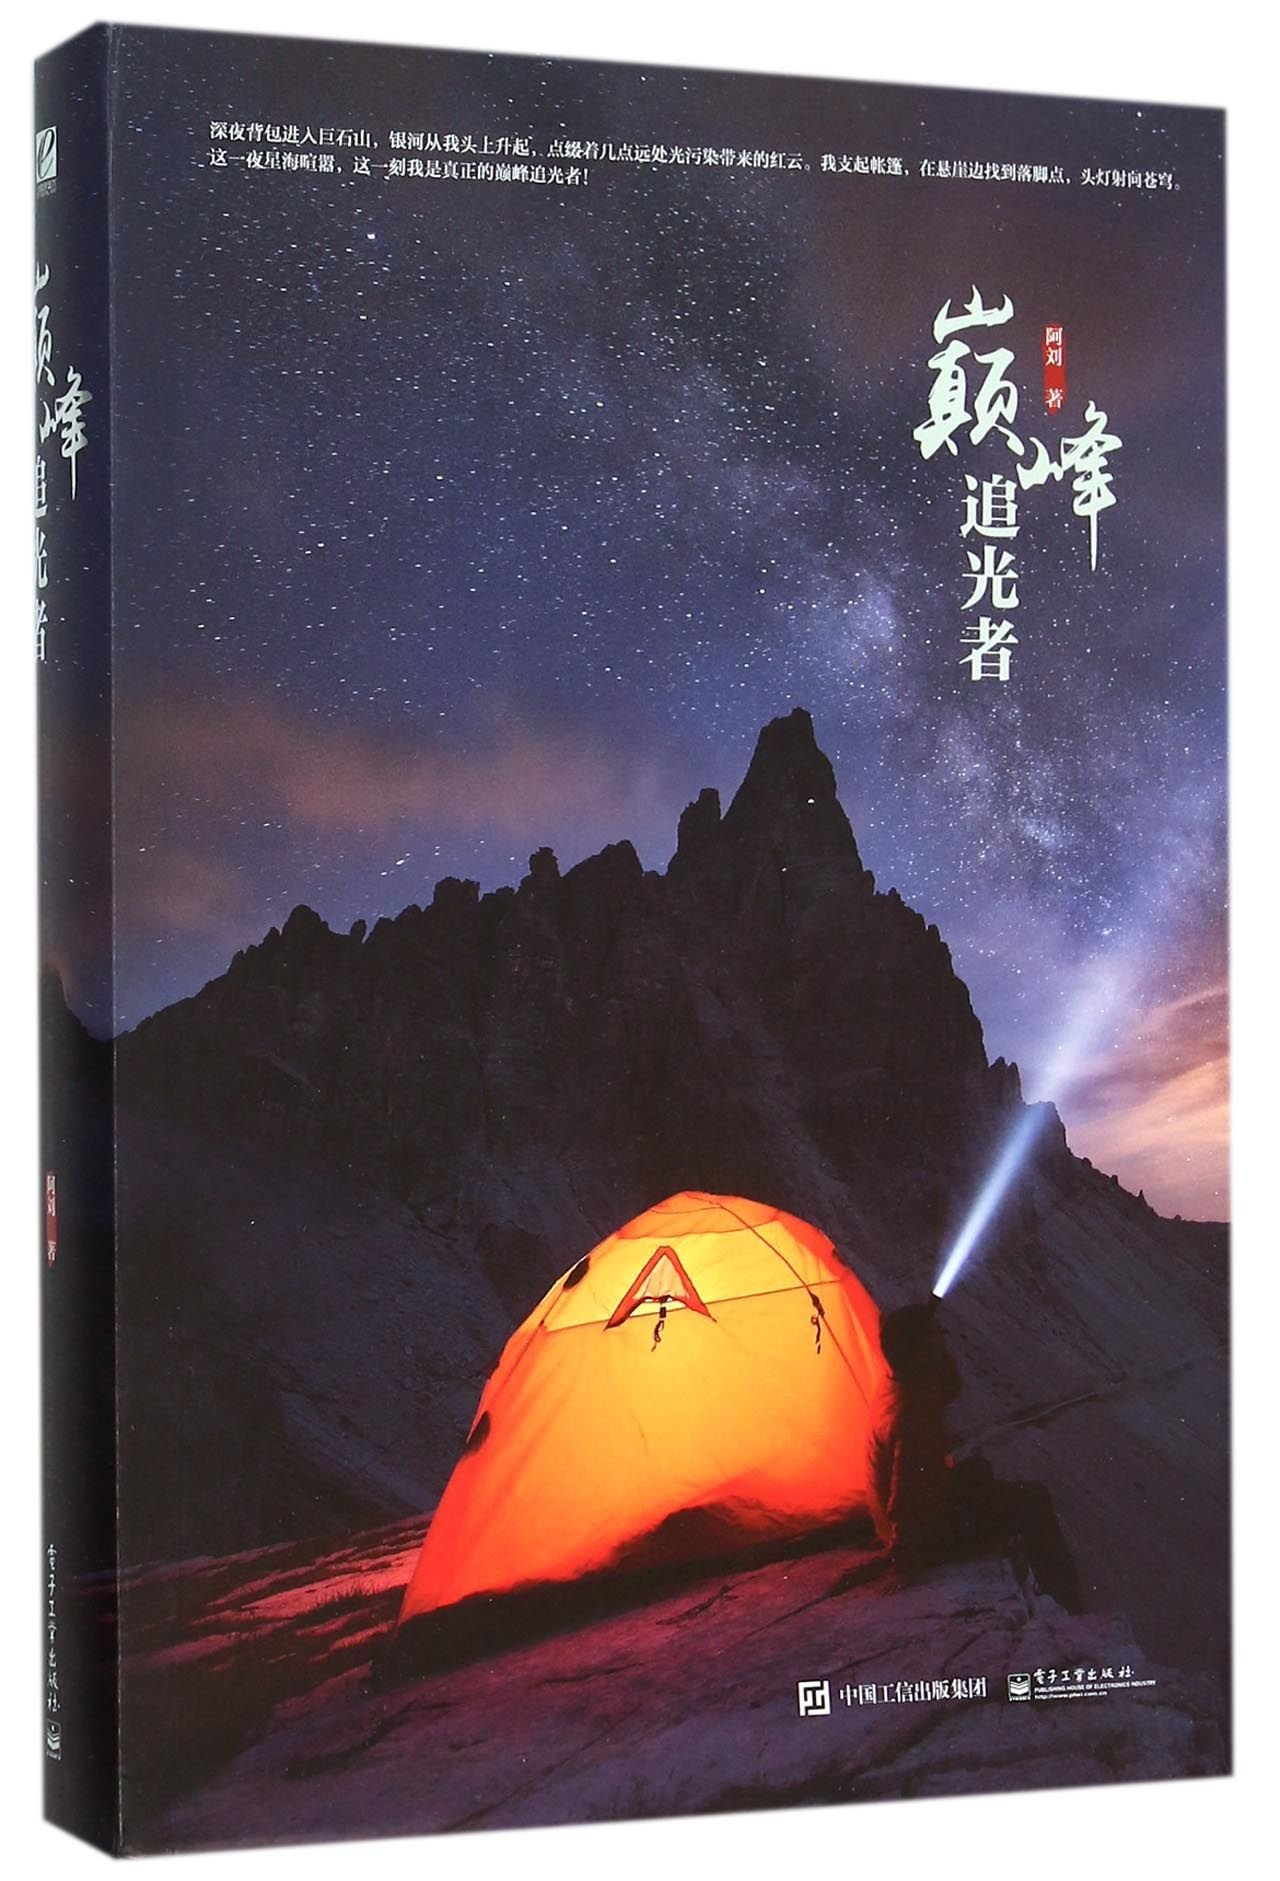 Light Chaser at the Peak (Chinese Edition) PDF